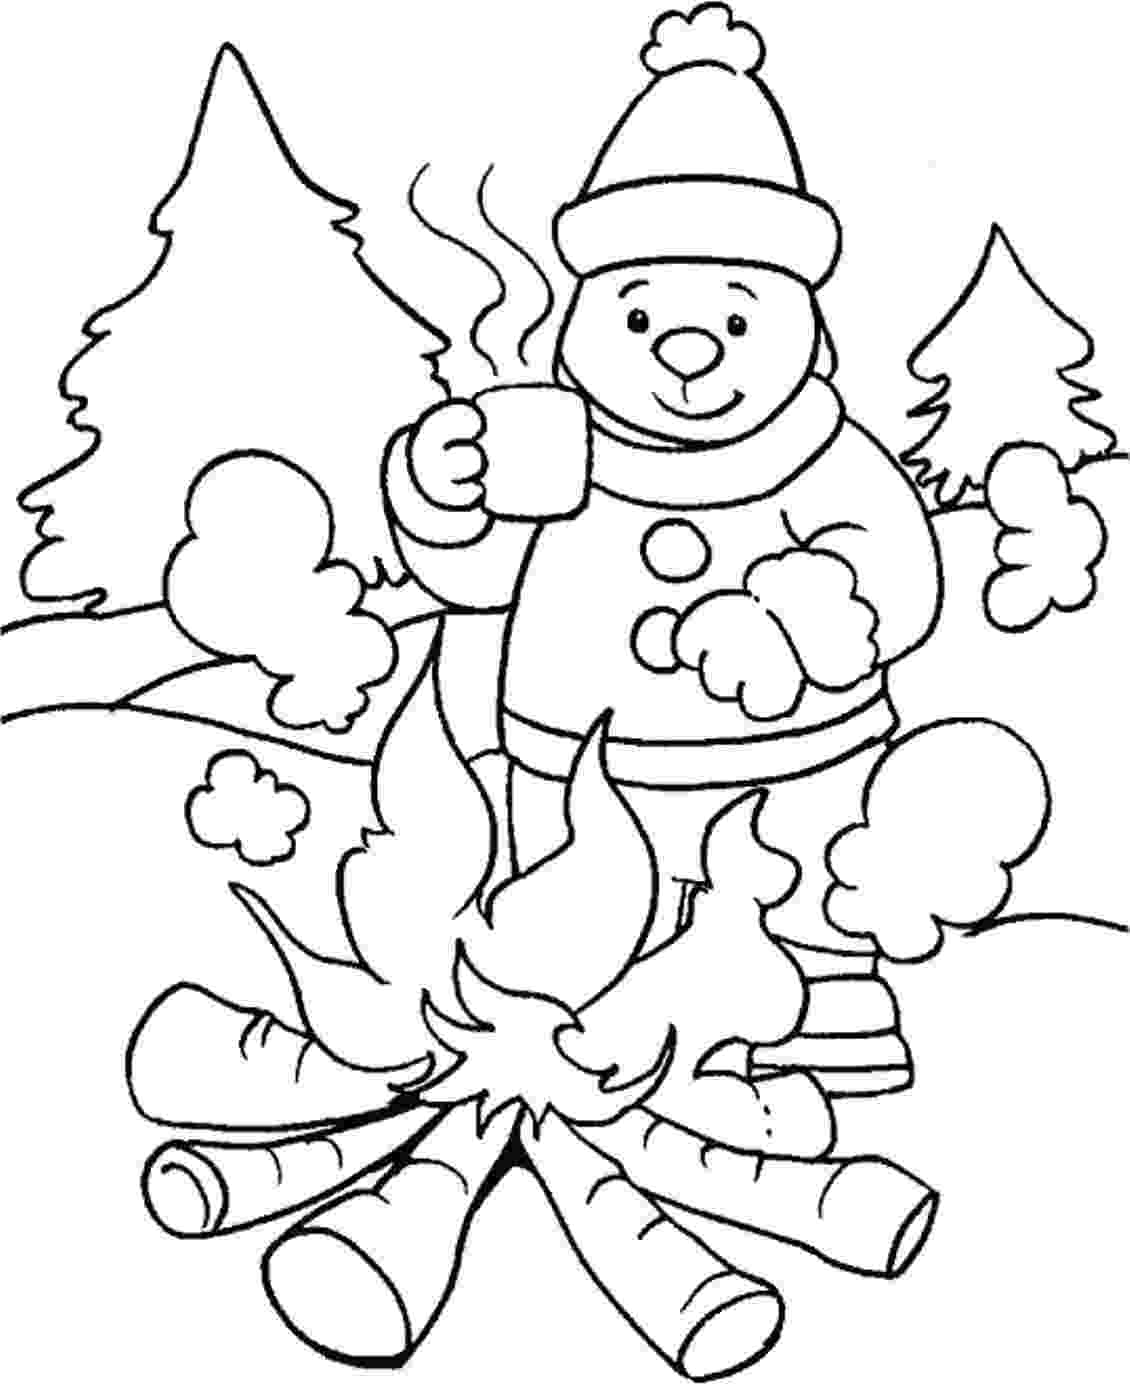 winter wonderland coloring pages frosty the snowman coloring pages printable shelter winter coloring pages wonderland